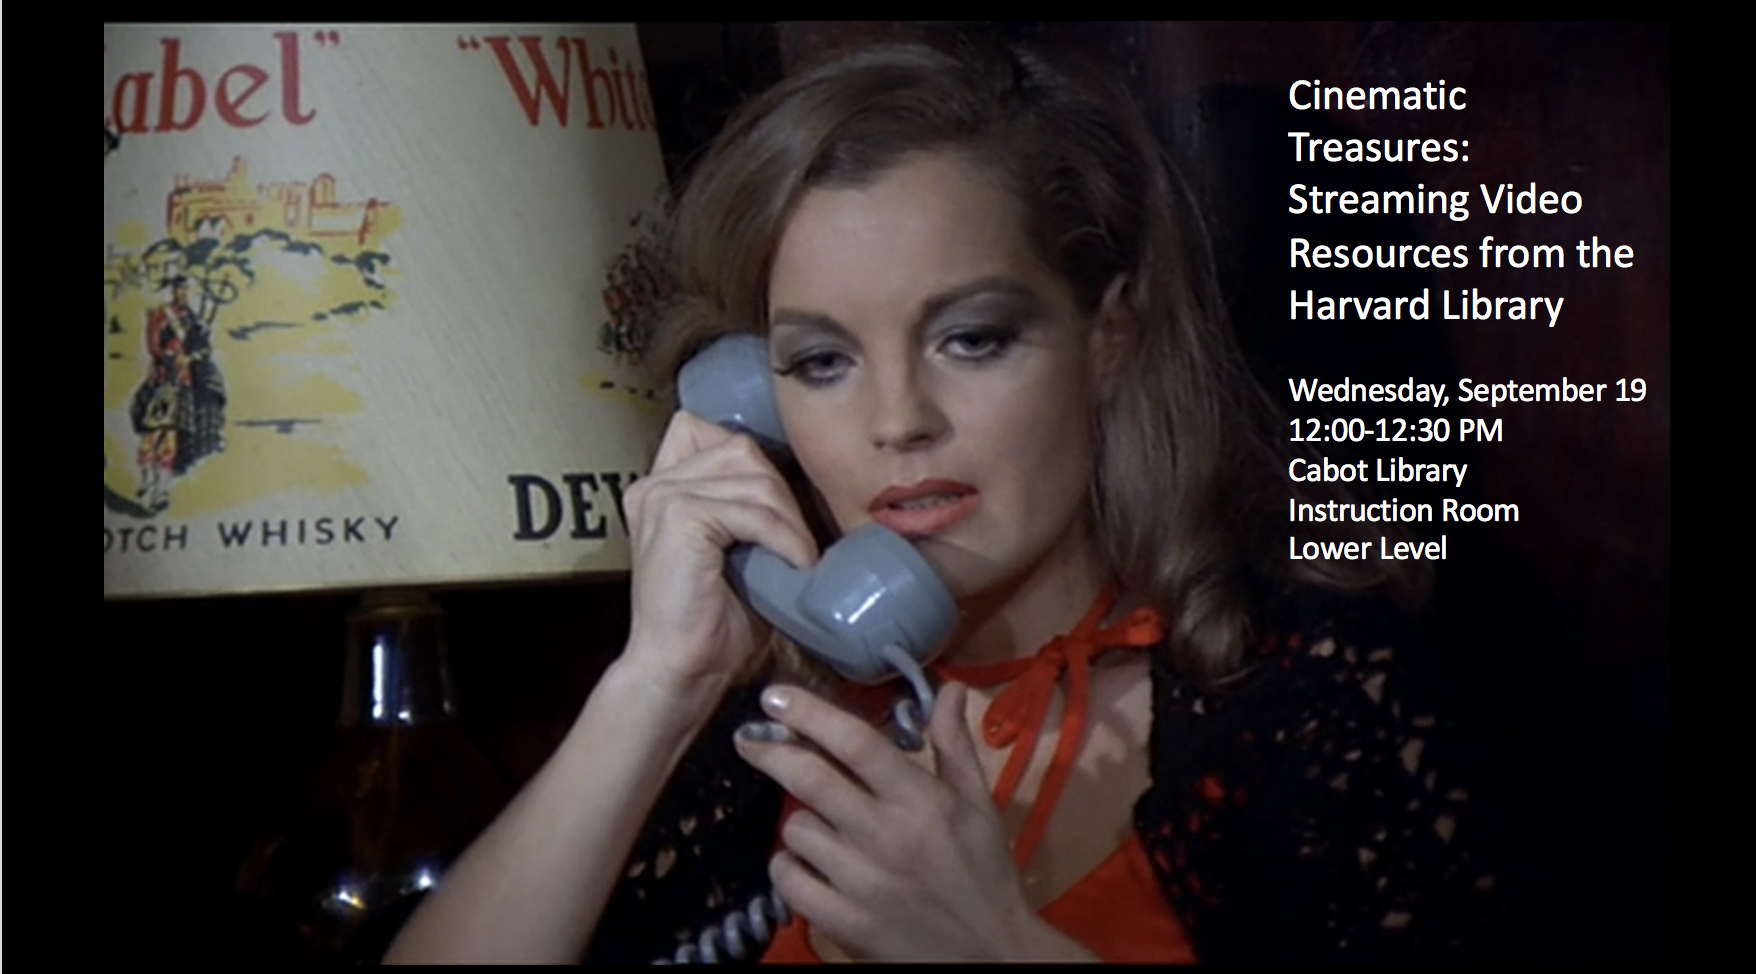 Cinematic Treasures: Streaming Video Resources from the Harvard Library